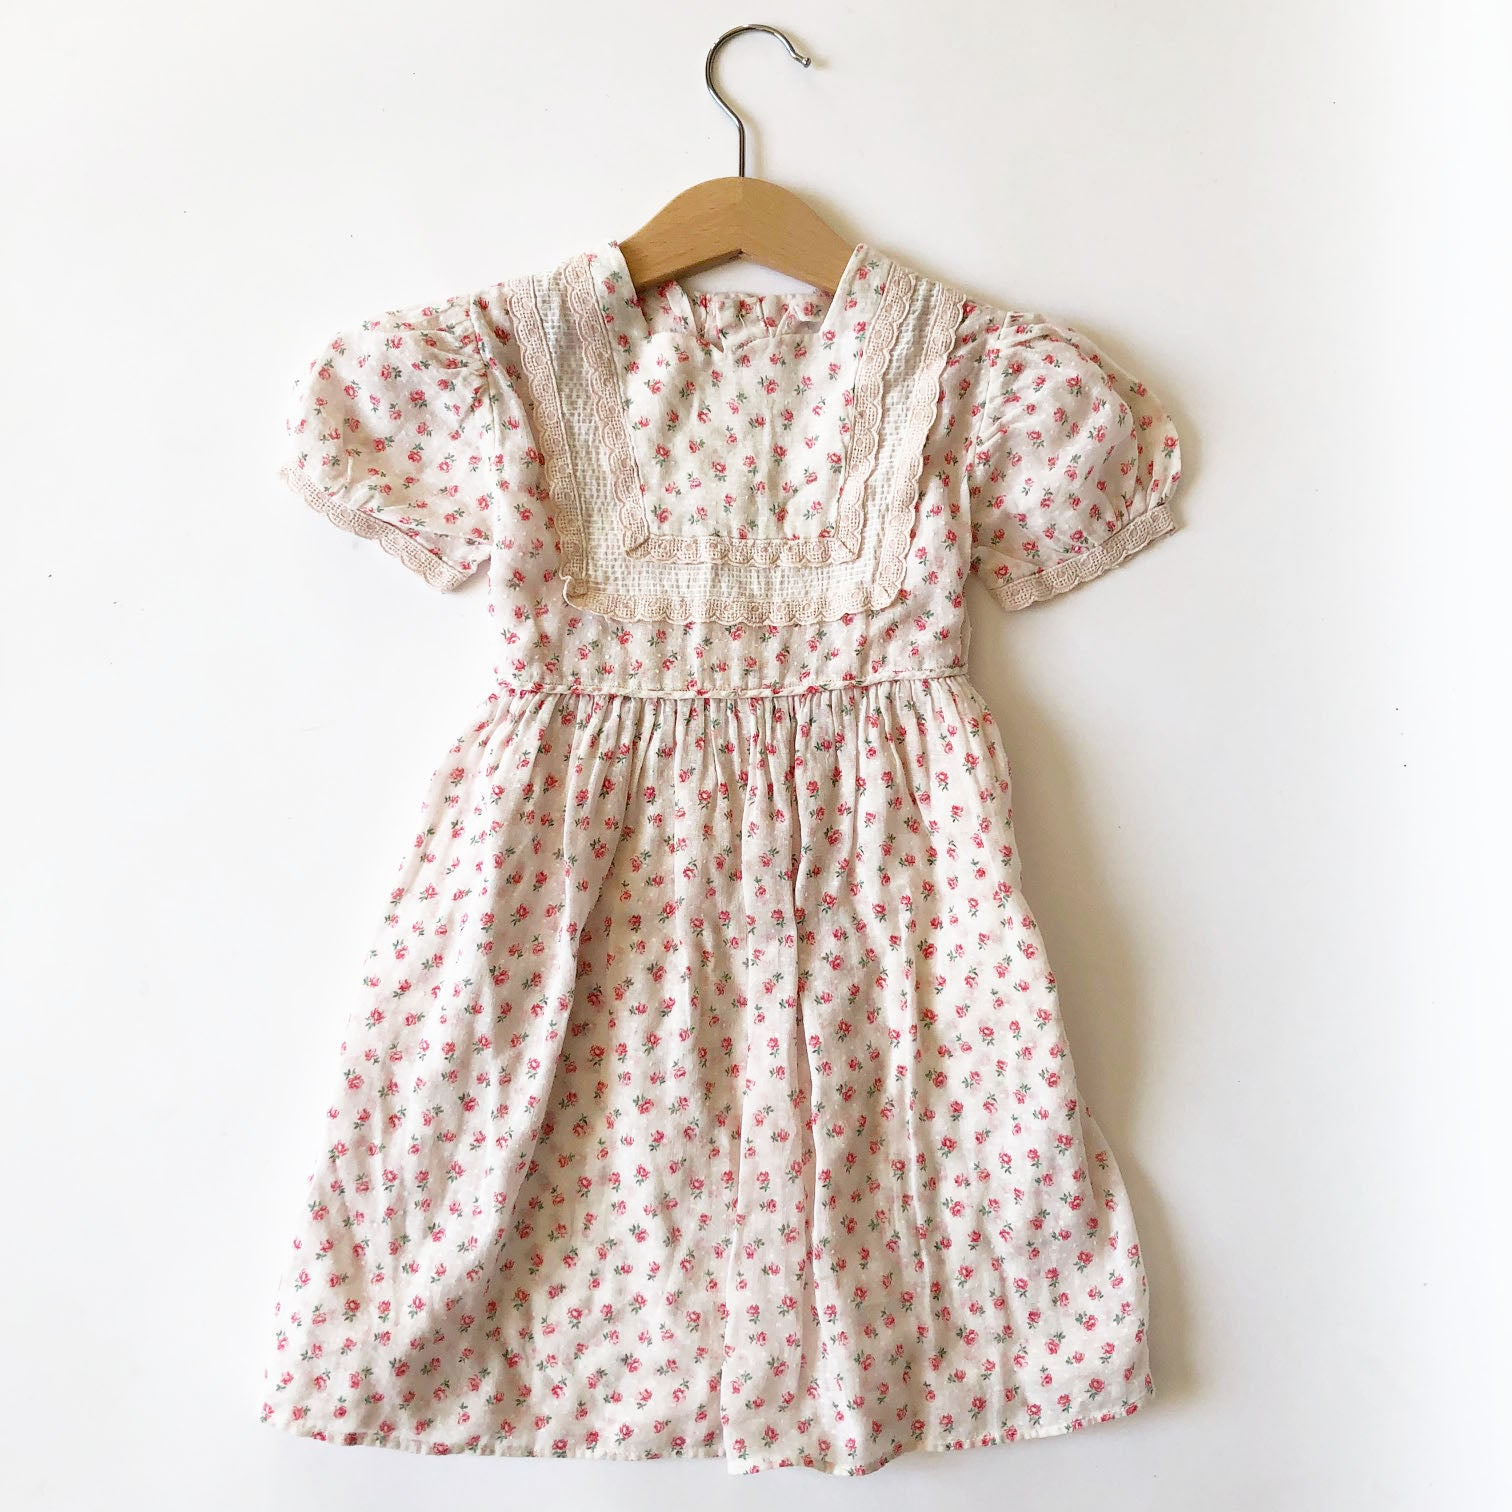 Little Ditsy Vintage Dress size 18-24 months